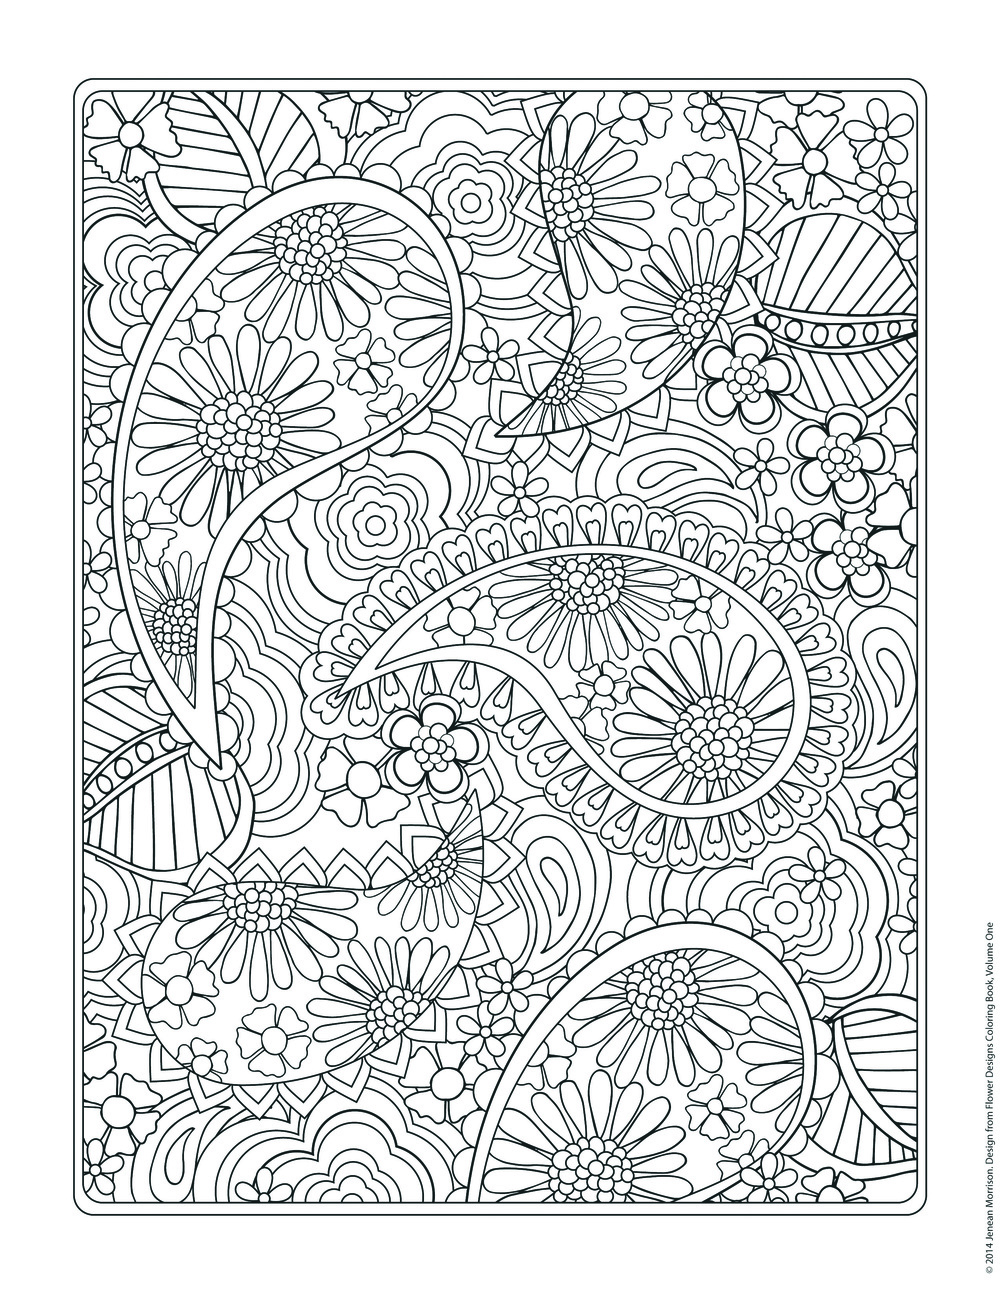 free coloring page from jenean morrisons flower designs coloring book - Coloringbook Pages